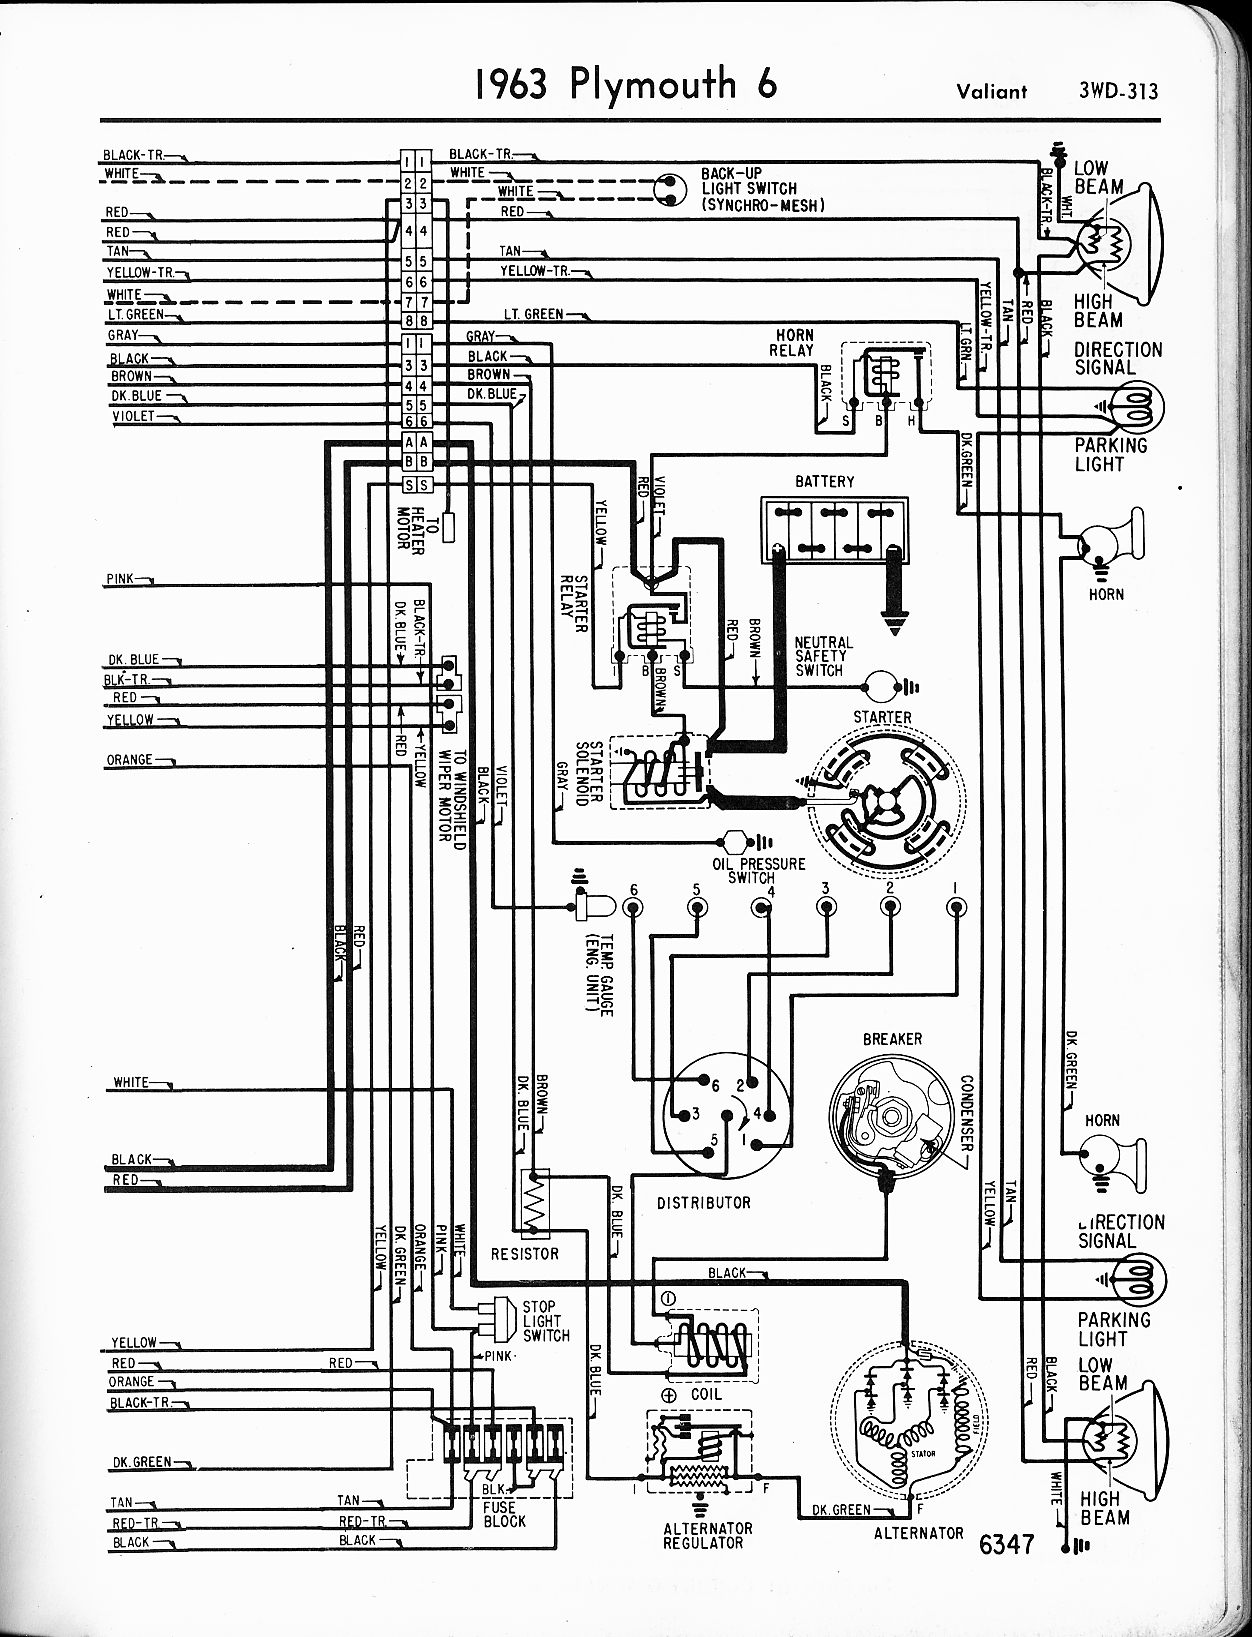 plymouth alarm wiring diagram 1956 - 1965 plymouth wiring - the old car manual project #7